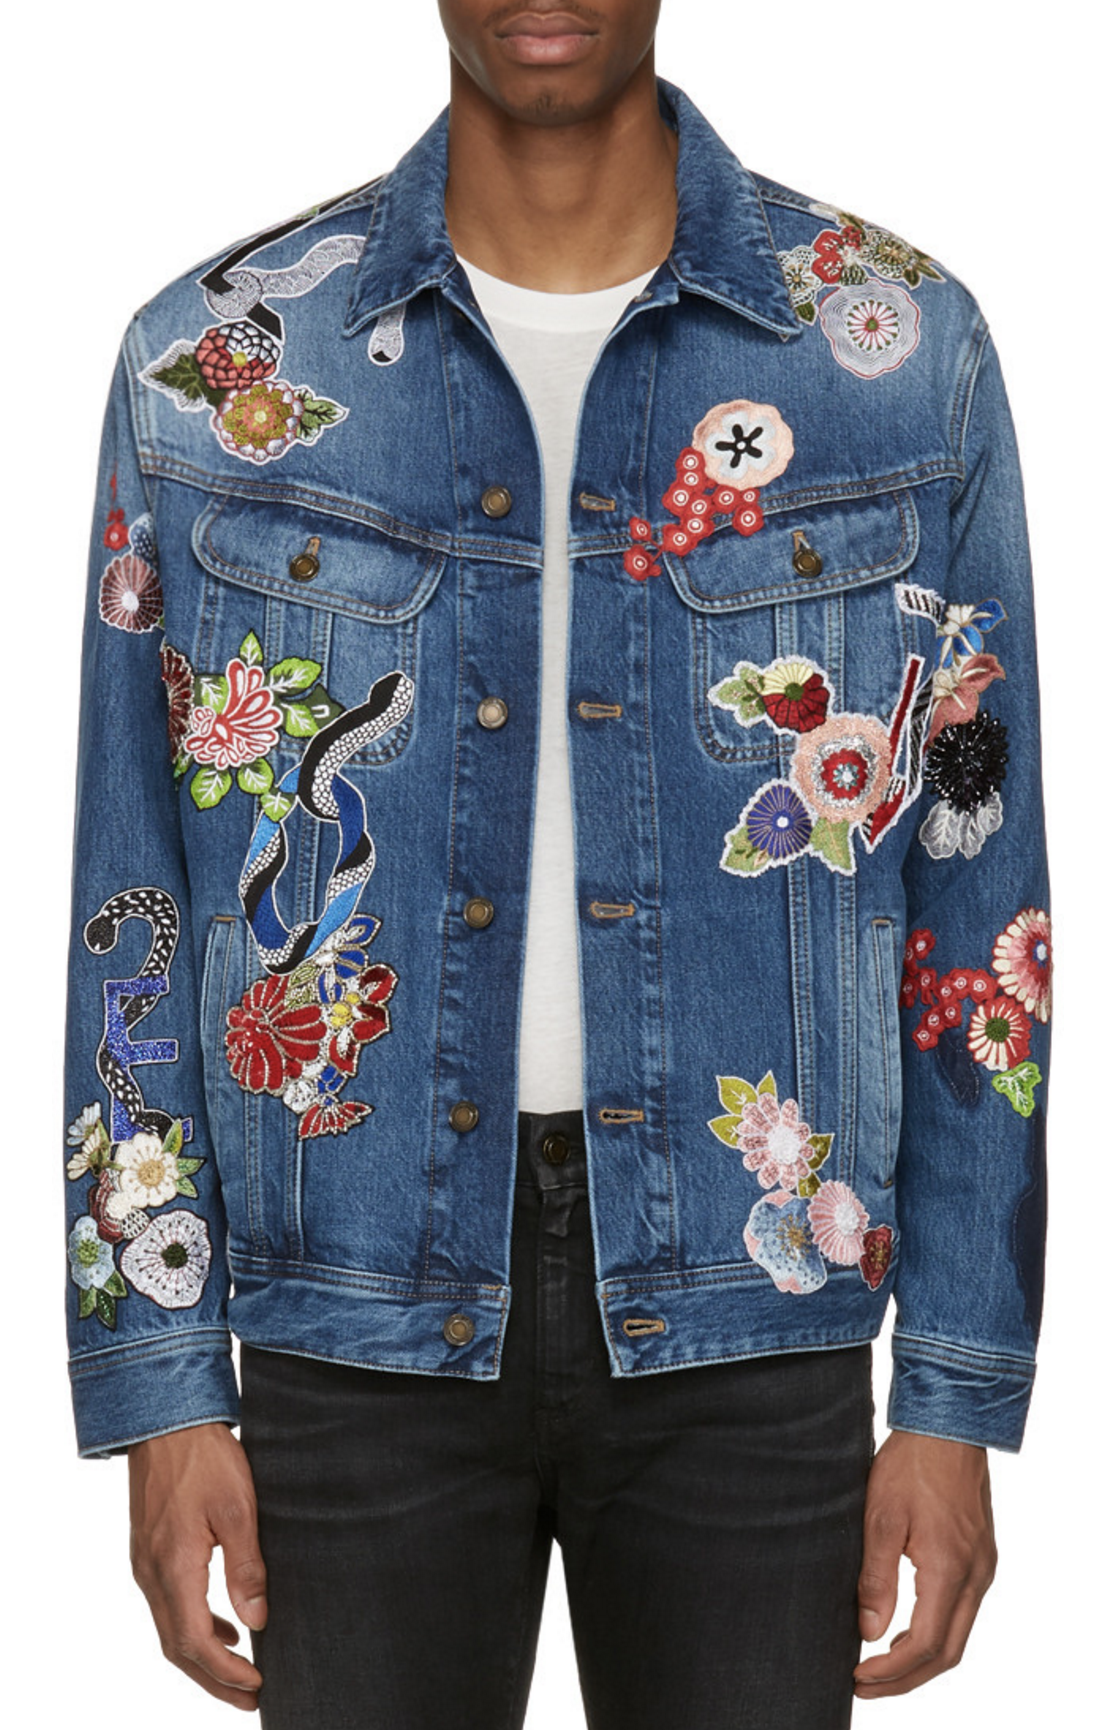 7a6ff74684e Saint Laurent Blue Denim Love Patch Jacket from SSENSE (men, style,  fashion, clothing, shopping, recommendations, stylish, menswear, male,  streetstyle, ...